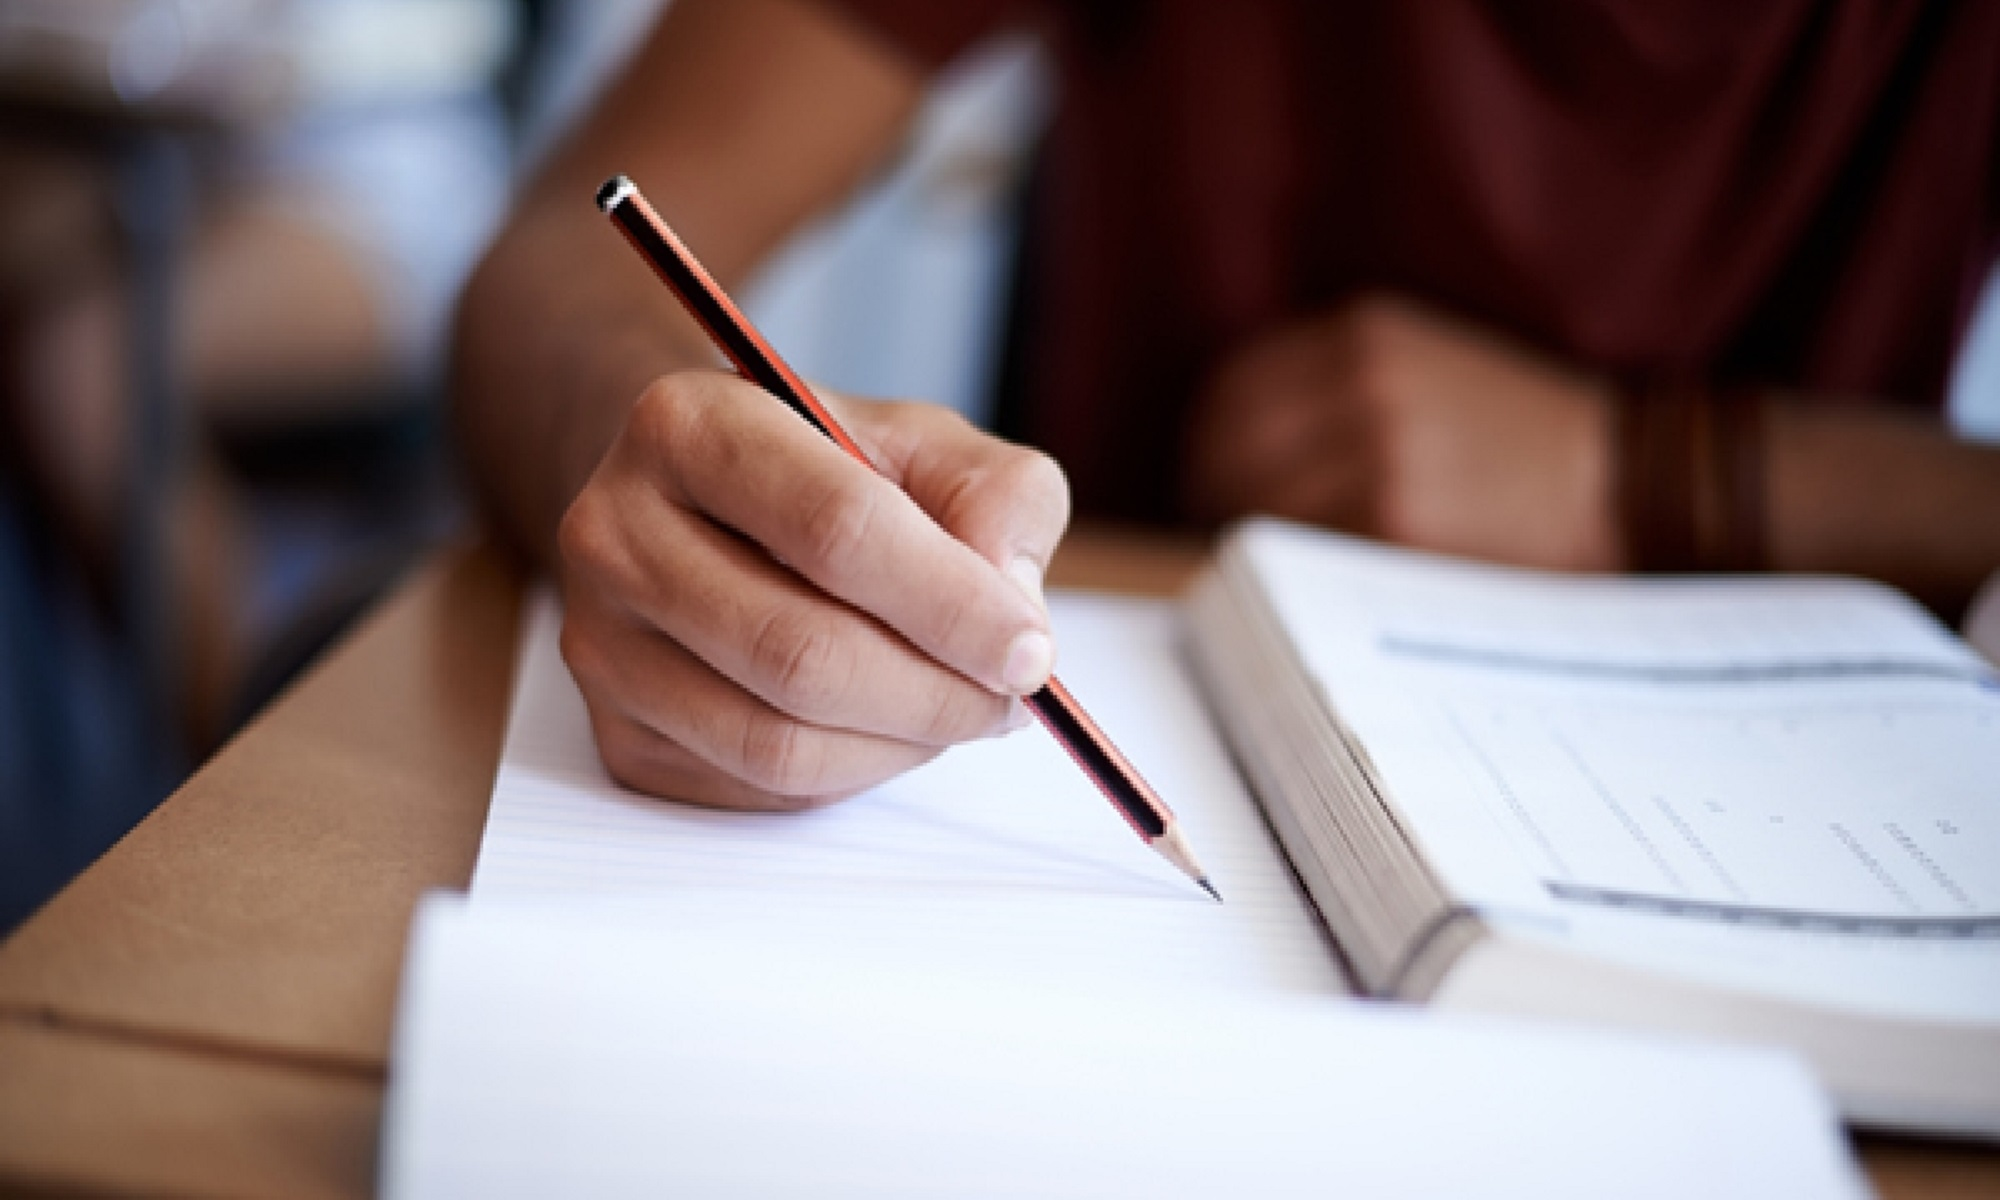 A photo of a student writing